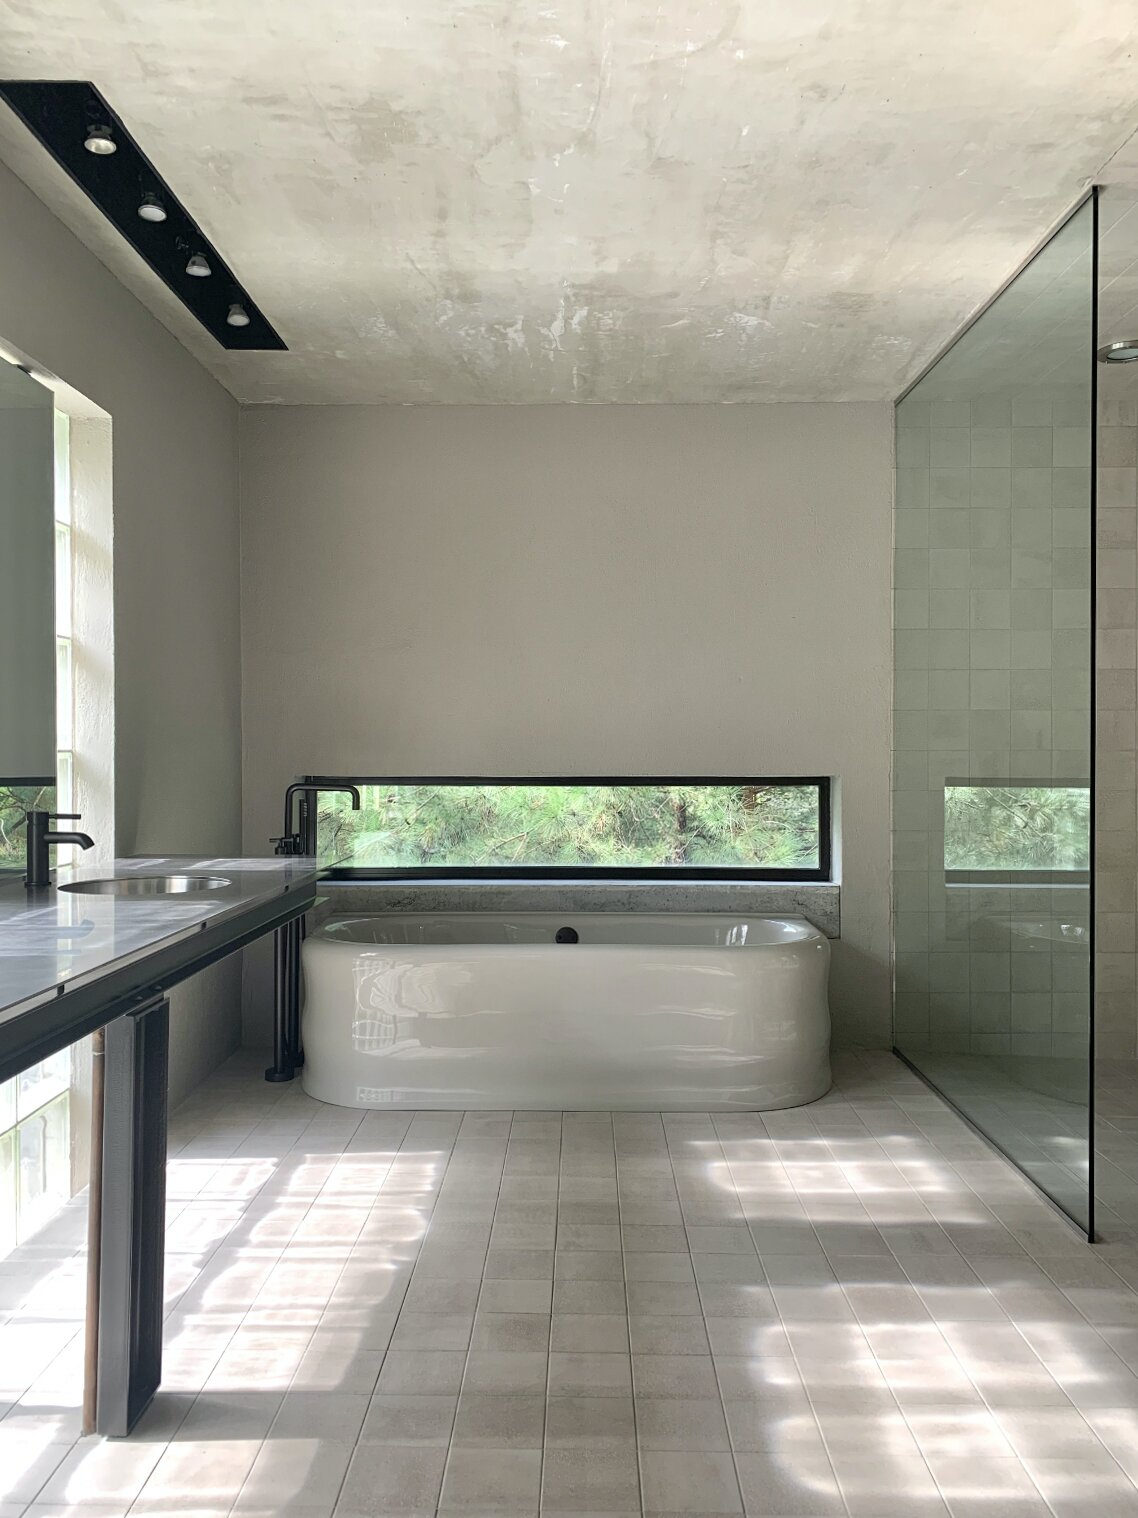 "A look at one of the home's two full bathrooms. The space features <span style=""font-family: Theinhardt, -apple-system, BlinkMacSystemFont, &quot;Segoe UI&quot;, Roboto, Oxygen-Sans, Ubuntu, Cantarell, &quot;Helvetica Neue&quot;, sans-serif;"">imported Dutch ceramic tile, Clark's custom vanity design supported by steel girders, and a reproduction of a 1930s bathtub custom cast in England.</span><span style=""font-family: Theinhardt, -apple-system, BlinkMacSystemFont, &quot;Segoe UI&quot;, Roboto, Oxygen-Sans, Ubuntu, Cantarell, &quot;Helvetica Neue&quot;, sans-serif;""> </span>  Photo 9 of 12 in Surrounded by a Marshy Forest, This Fortress-Like Home Asks $1.7M in Virginia"